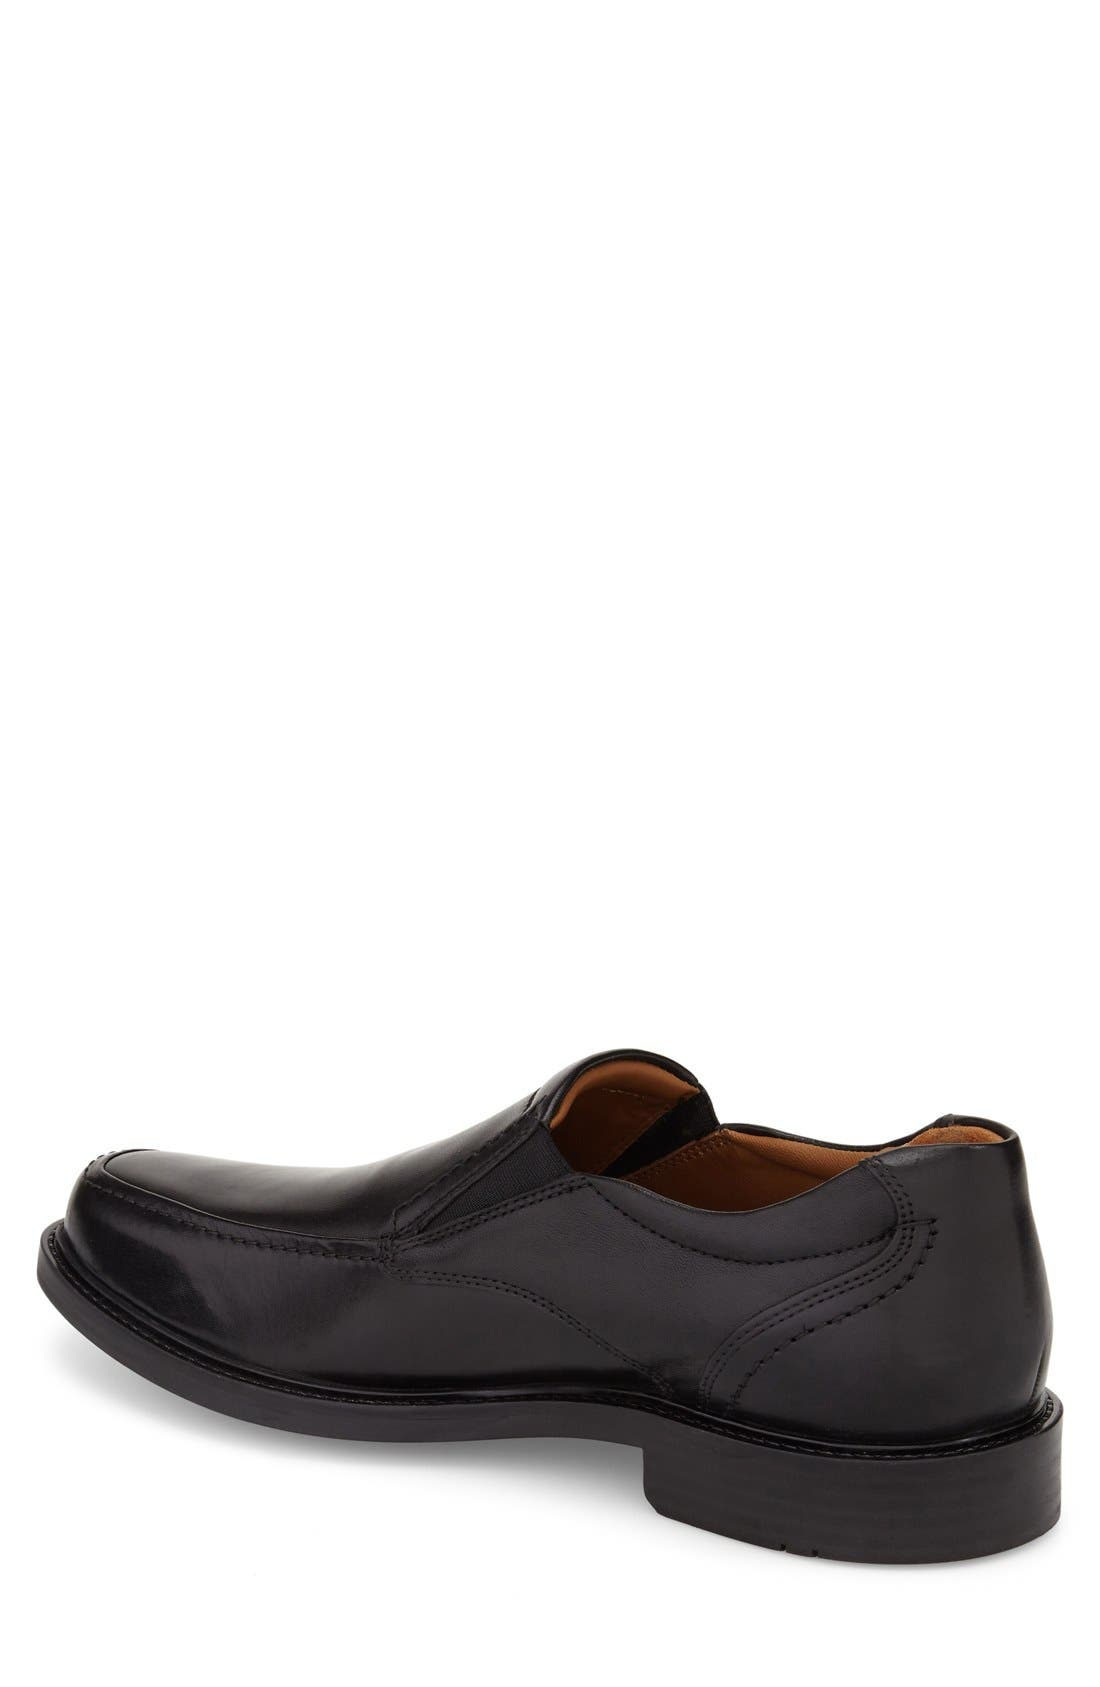 Tabor Venetian Loafer,                             Alternate thumbnail 2, color,                             Black Leather